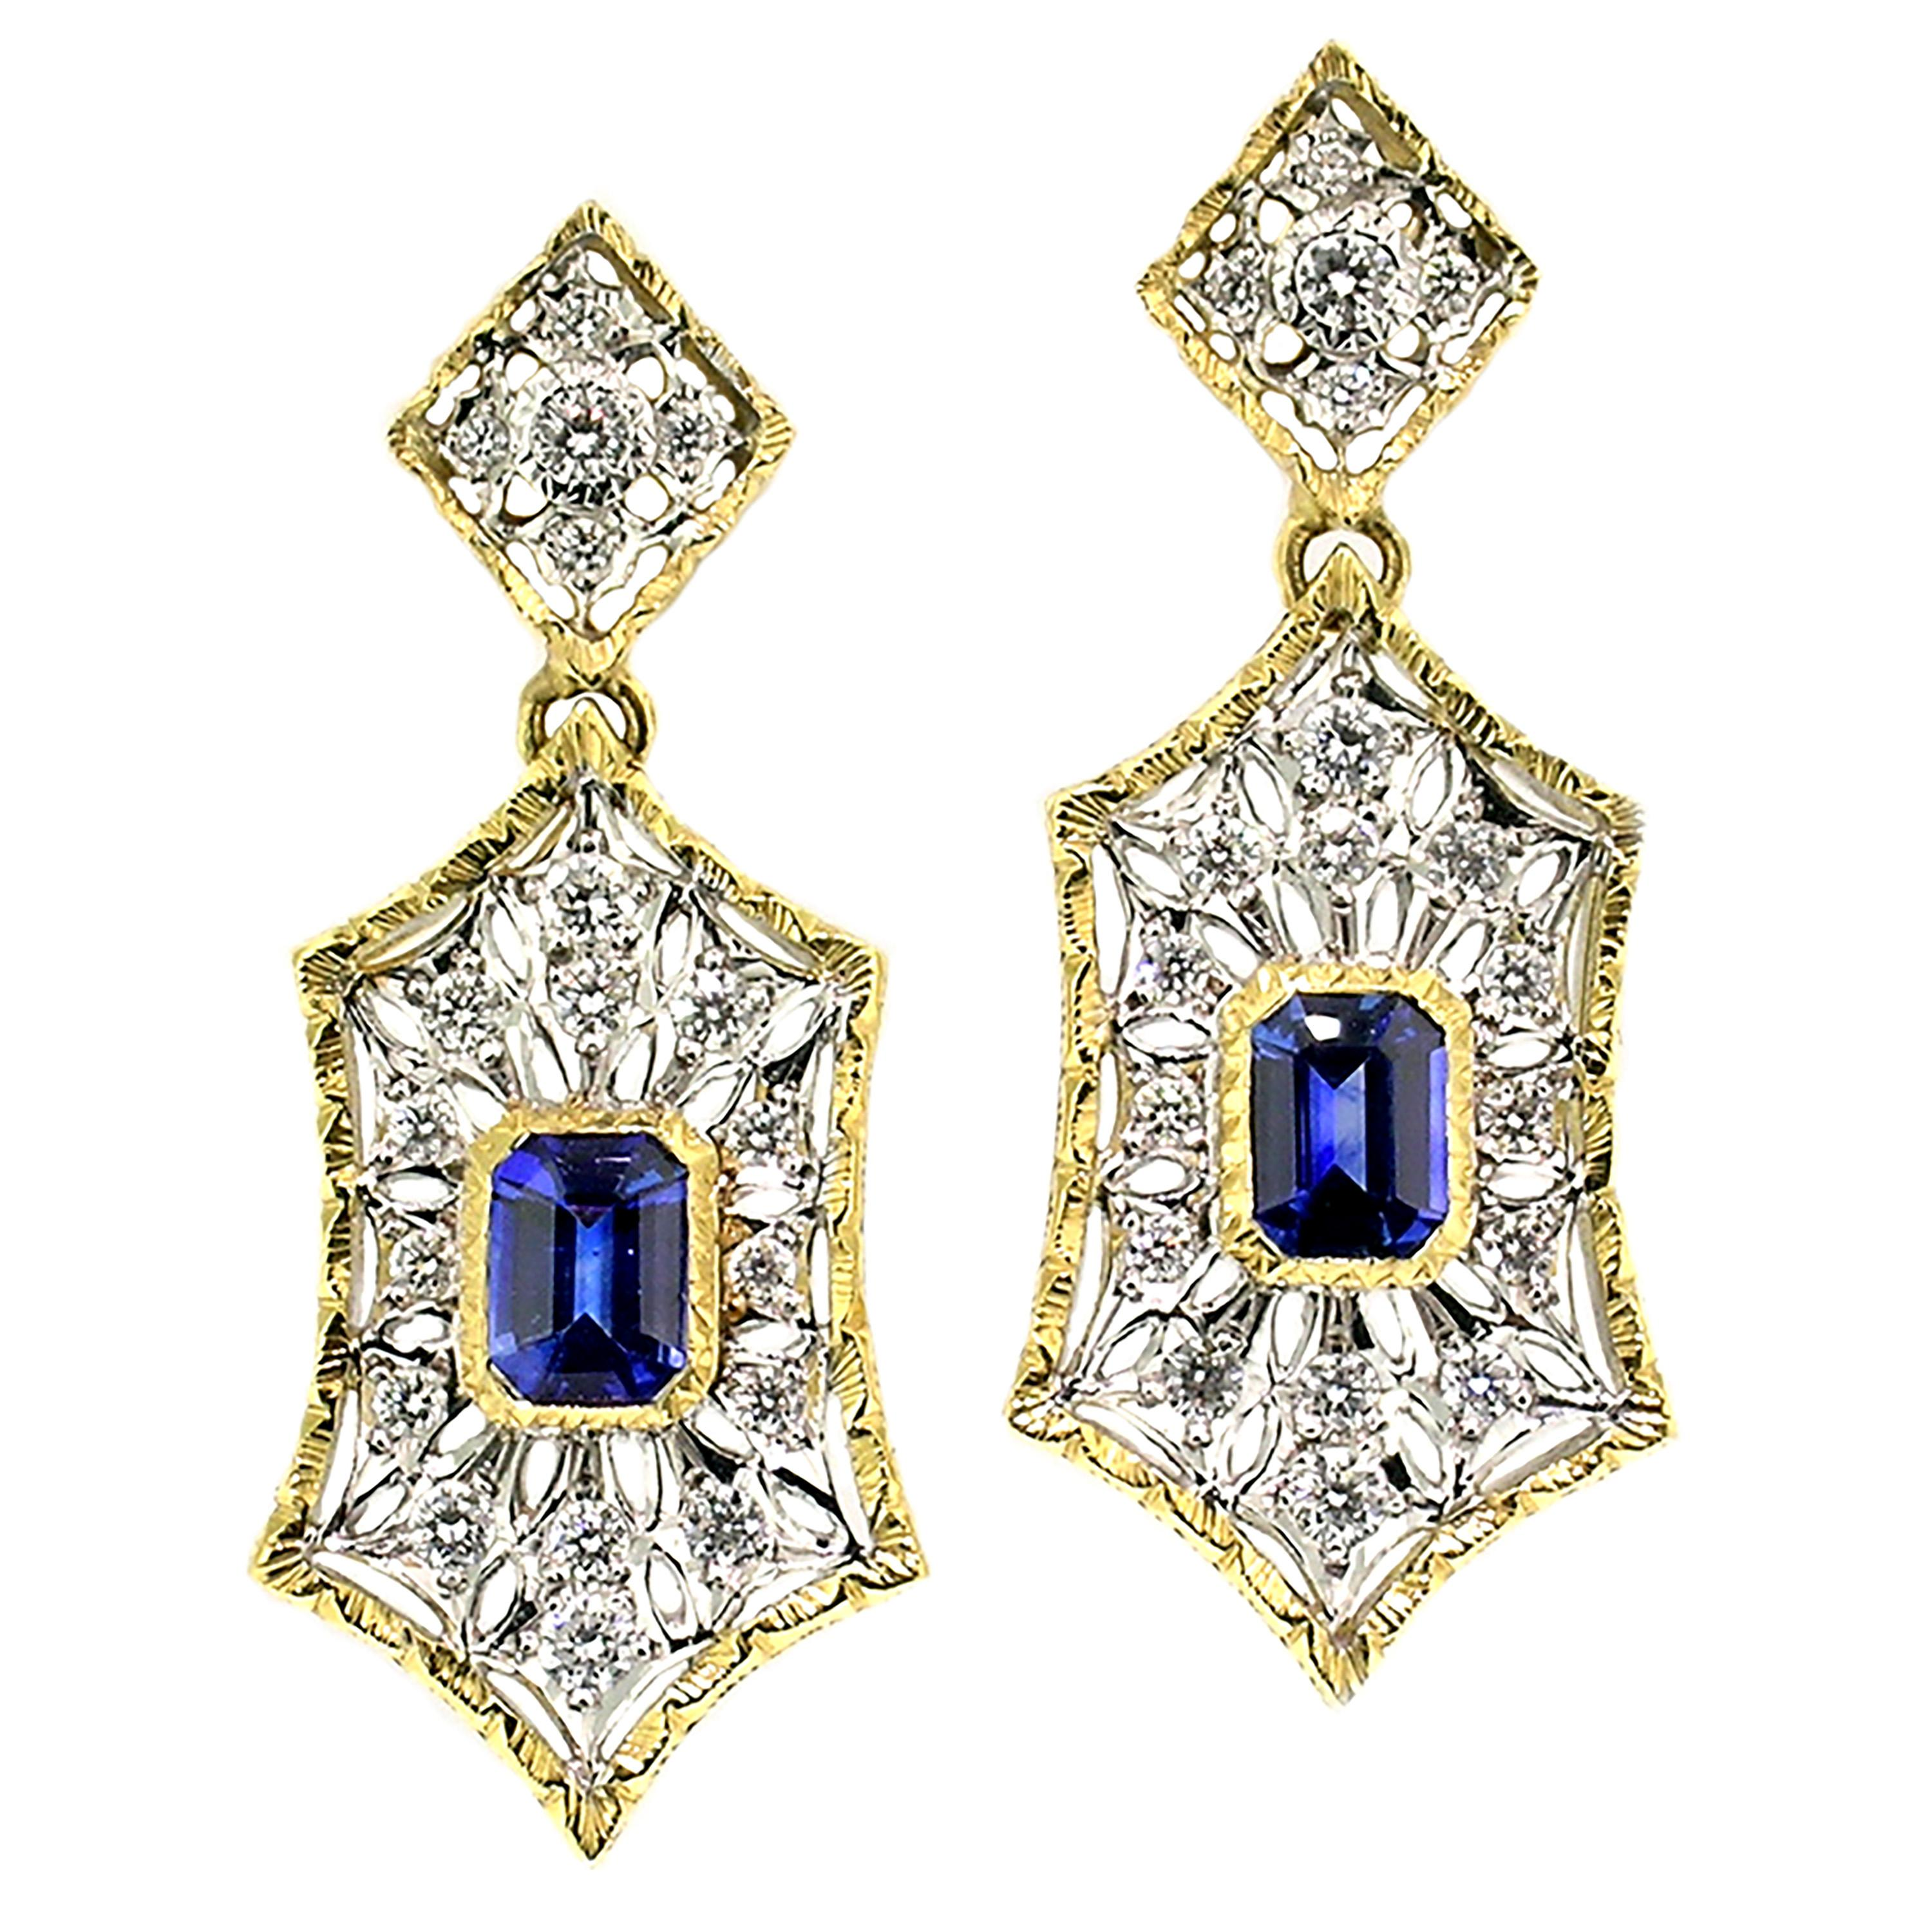 1.84ct Ceylon Sapphire and Diamond 18kt Earrings, Made in Italy by Cynthia Scott